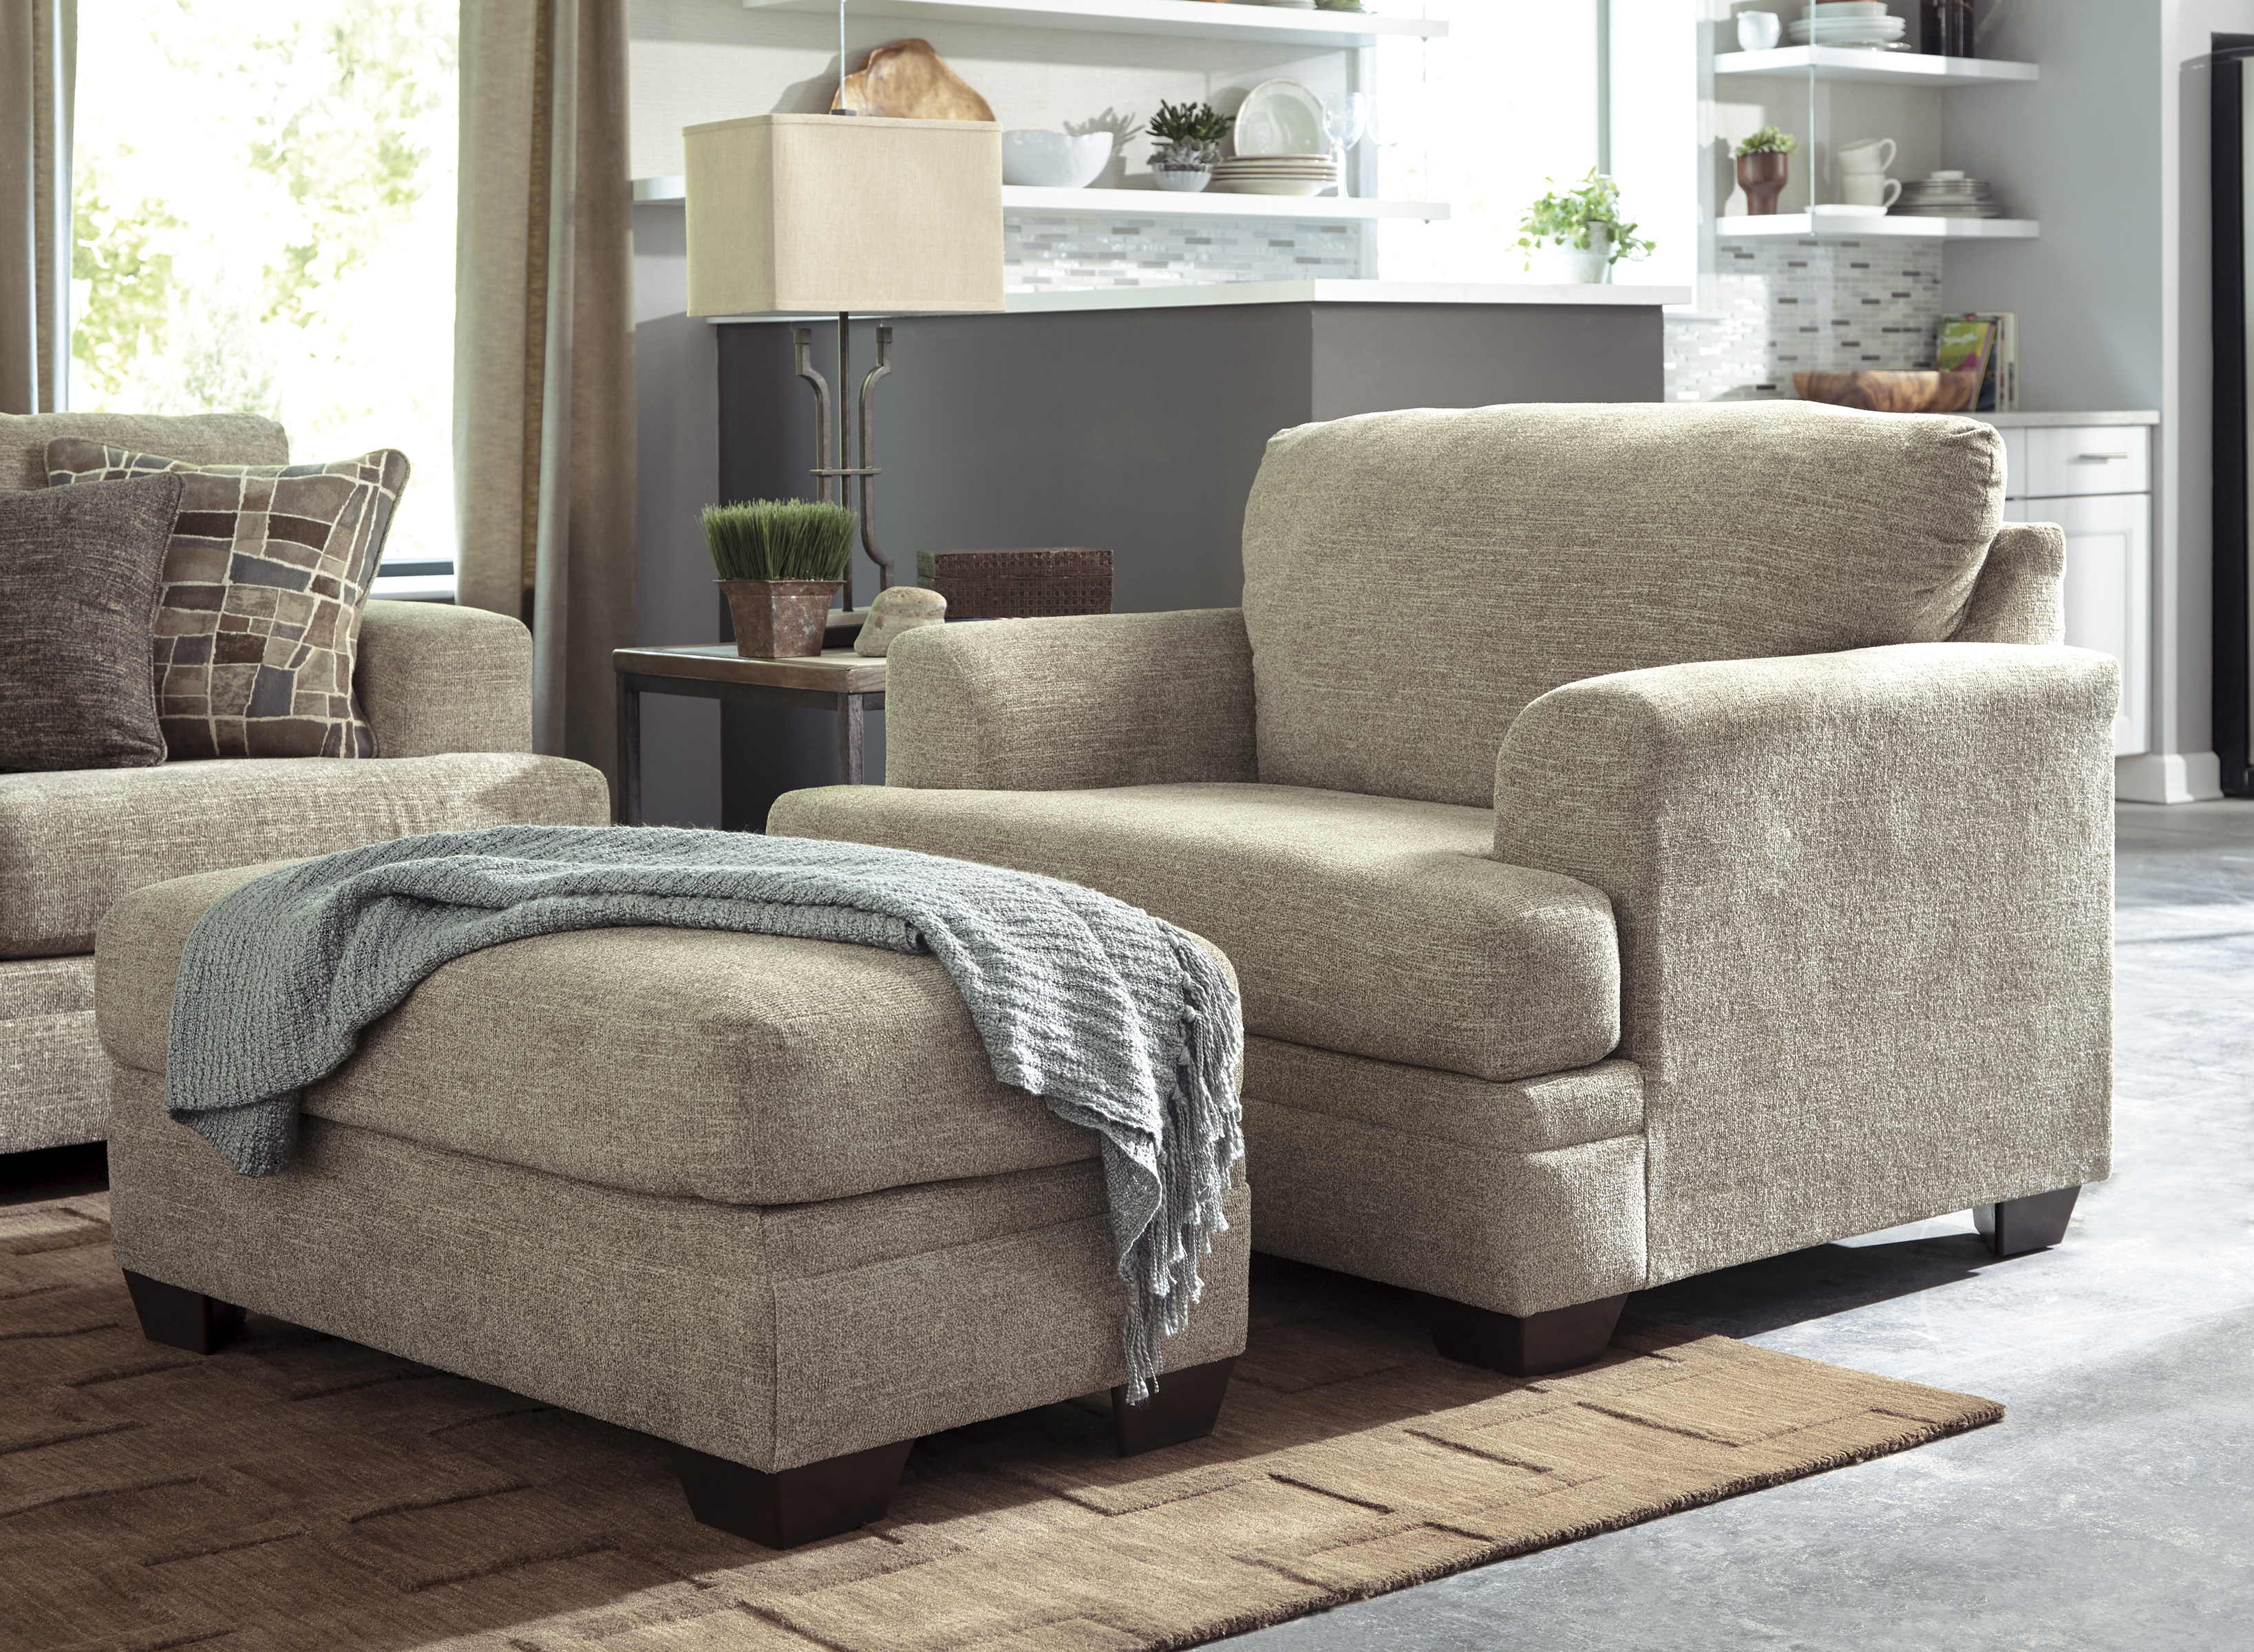 Barrish Sisal Sofa Marjen Of Chicago Chicago Discount